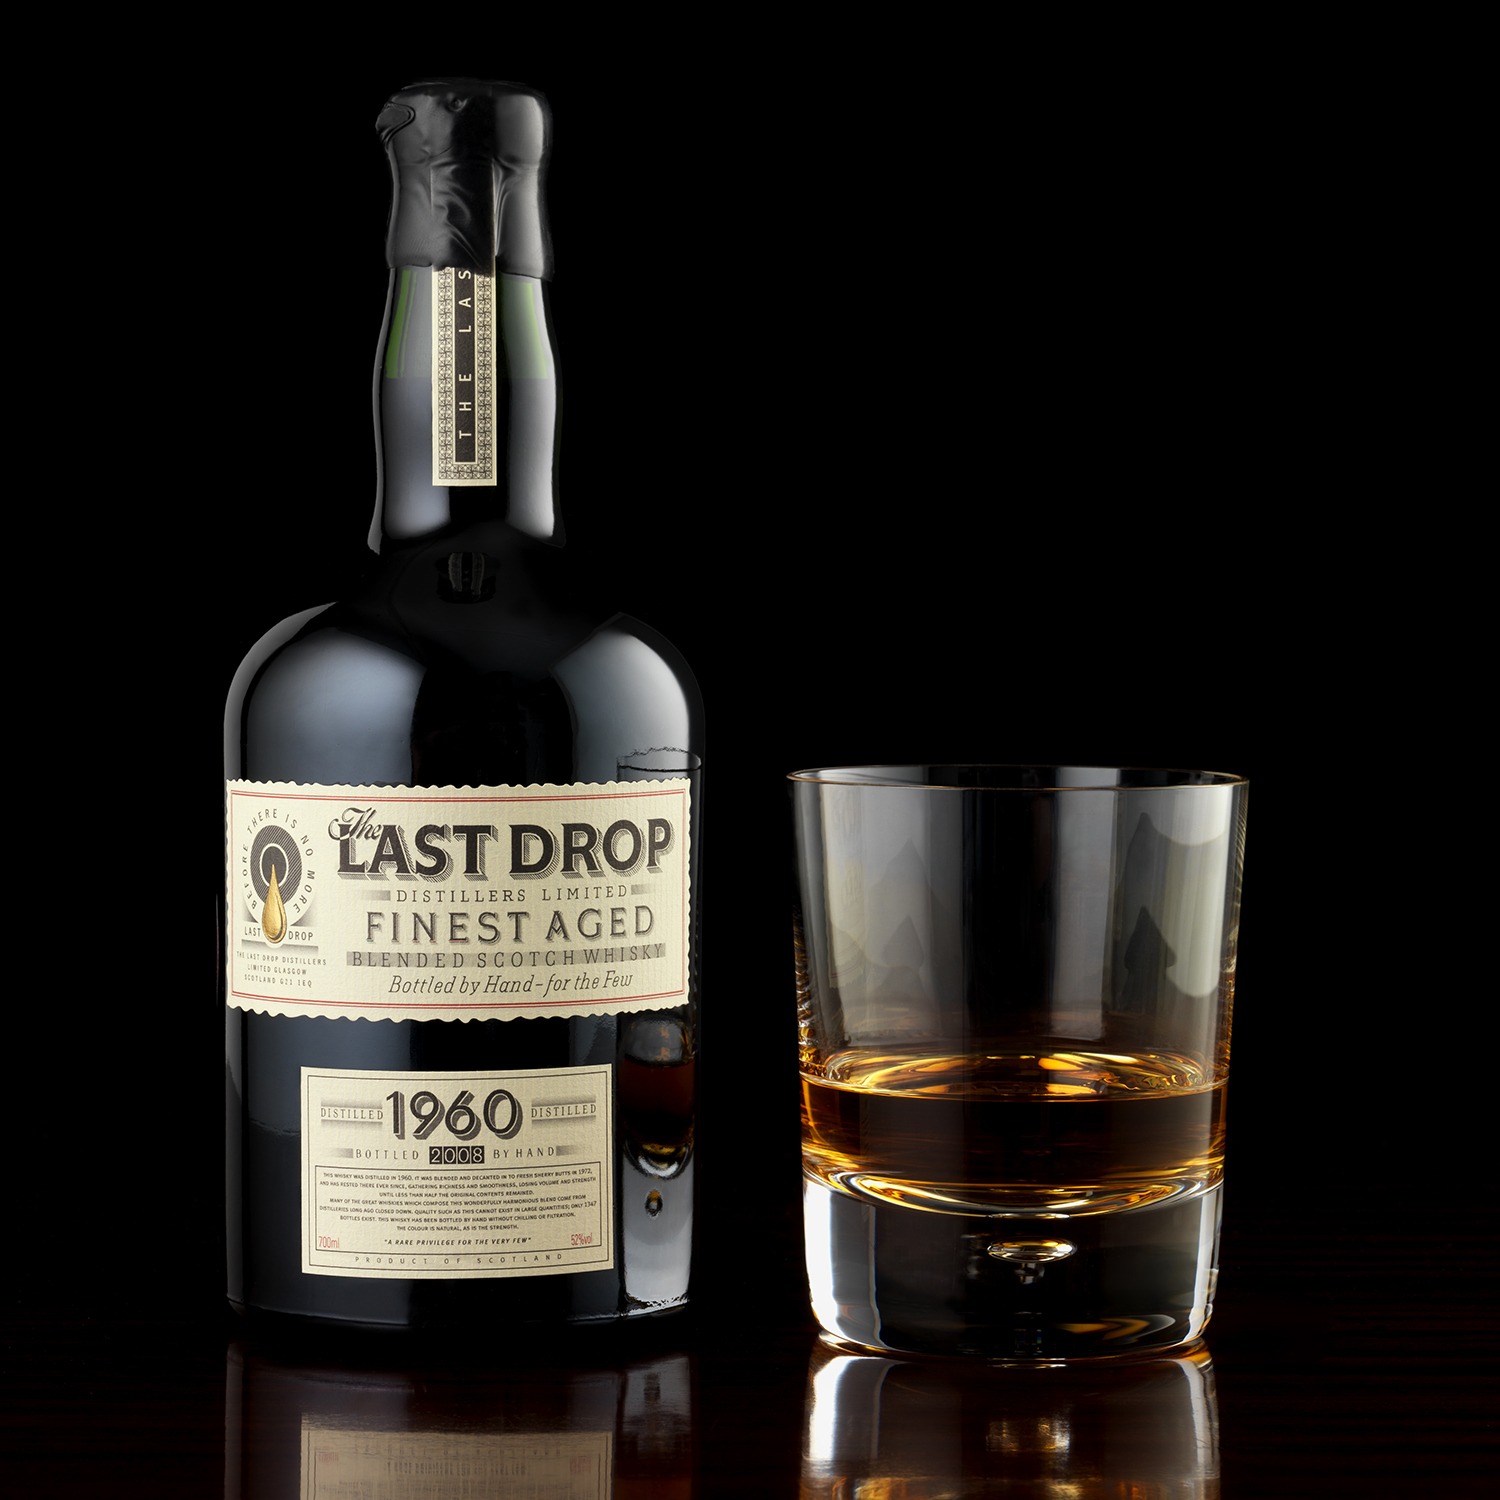 tld-60-year-old-whisky.jpg